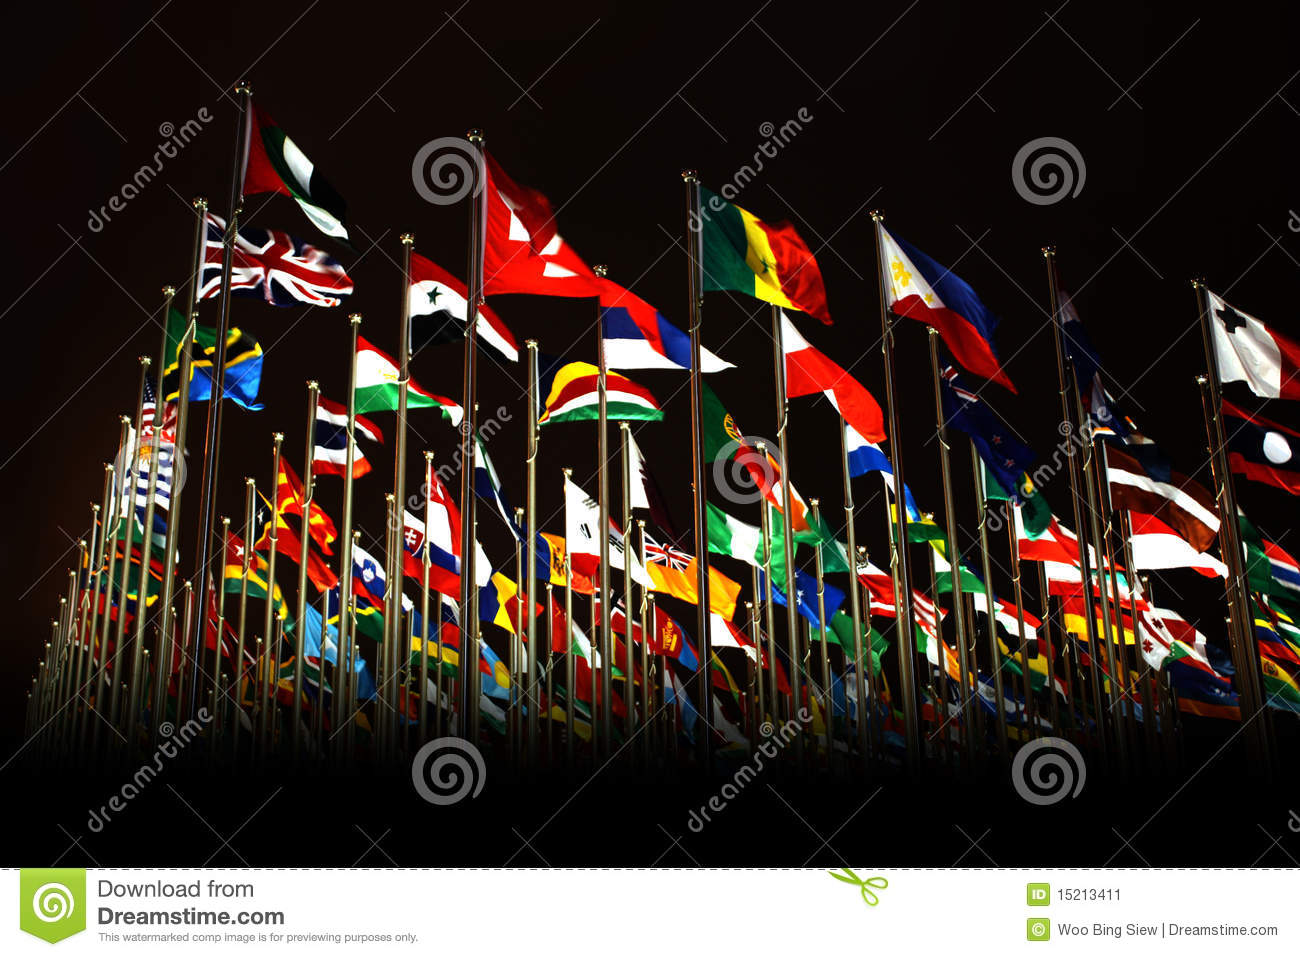 Countries flags in Shanghai World Expo